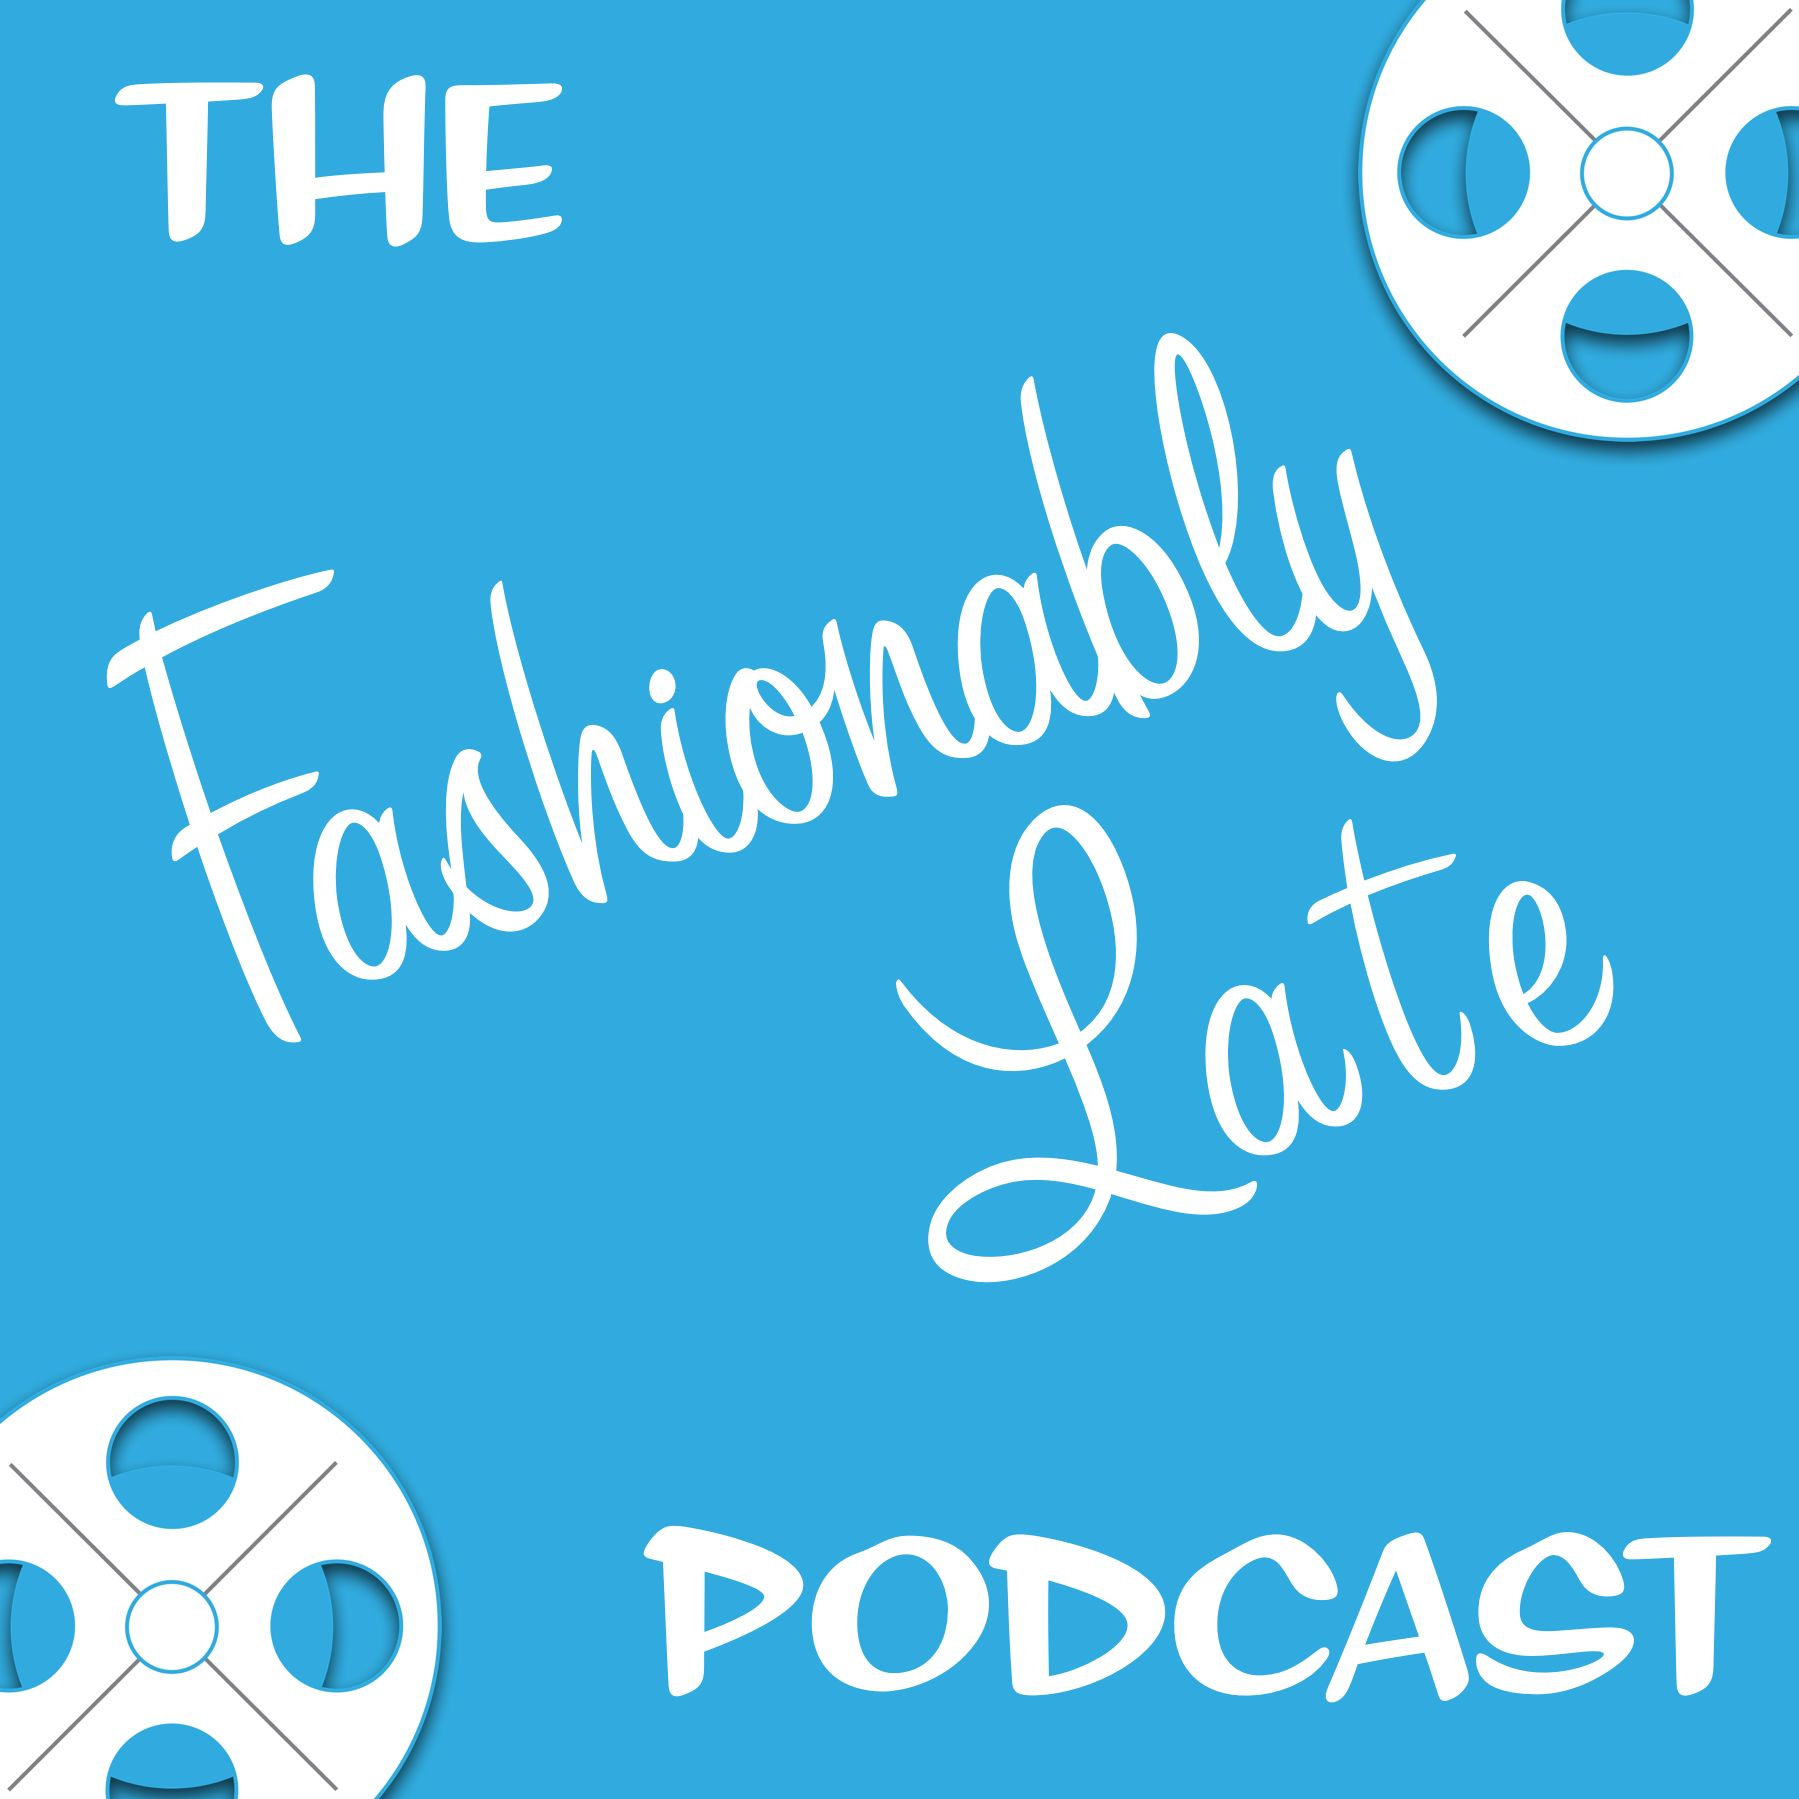 Fashionably Late Podcast